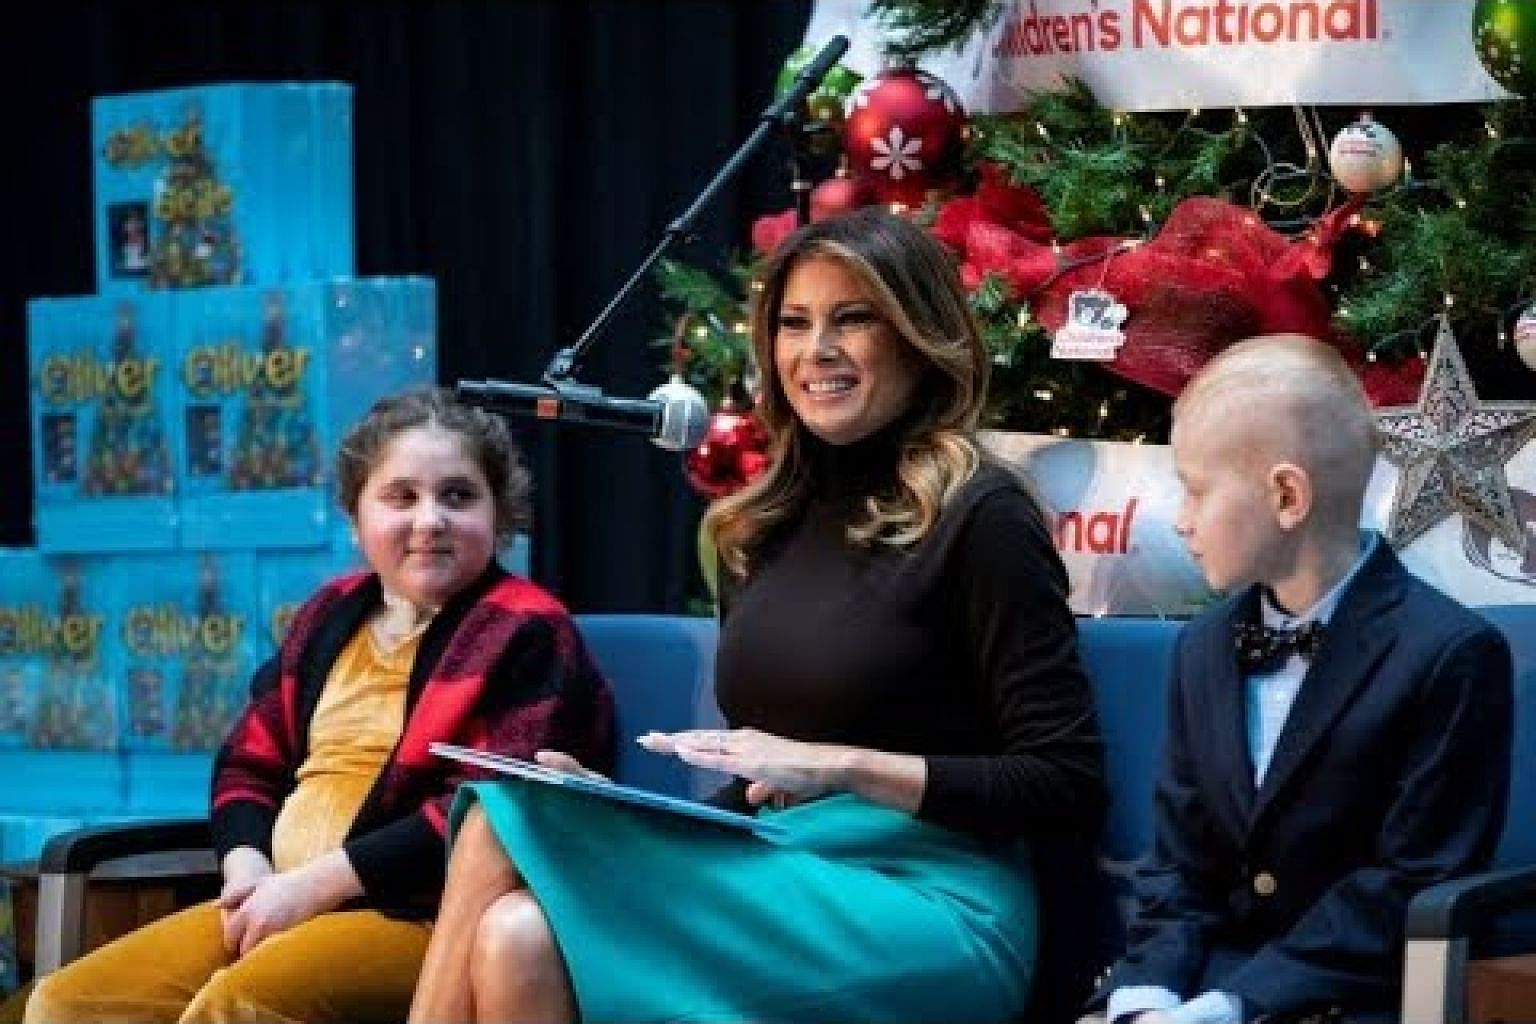 First lady shares holiday story at Children's National Hospital